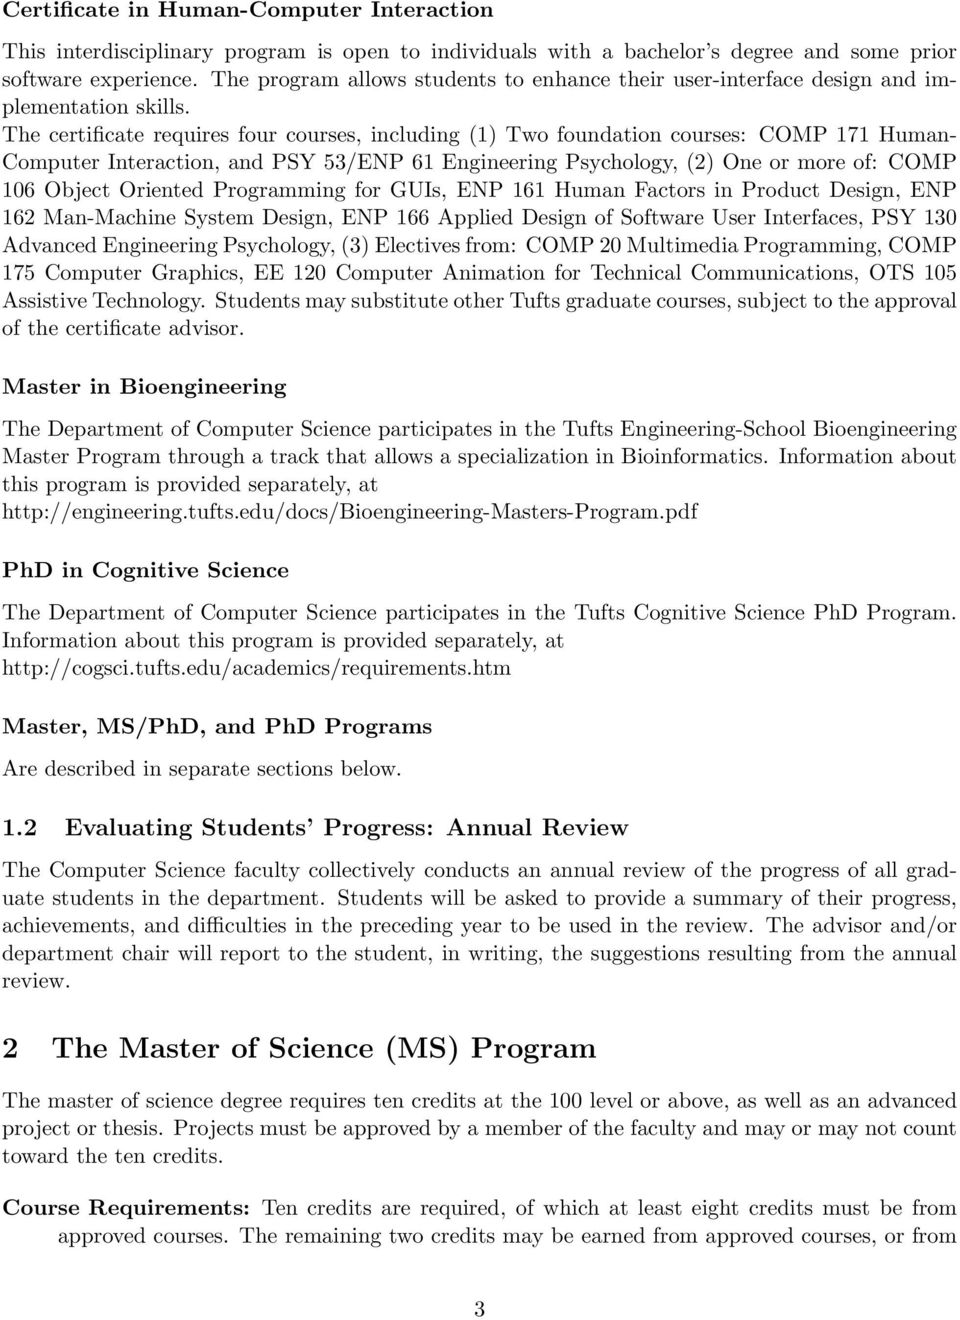 The certificate requires four courses, including (1) Two foundation courses: COMP 171 Human- Computer Interaction, and PSY 53/ENP 61 Engineering Psychology, (2) One or more of: COMP 106 Object